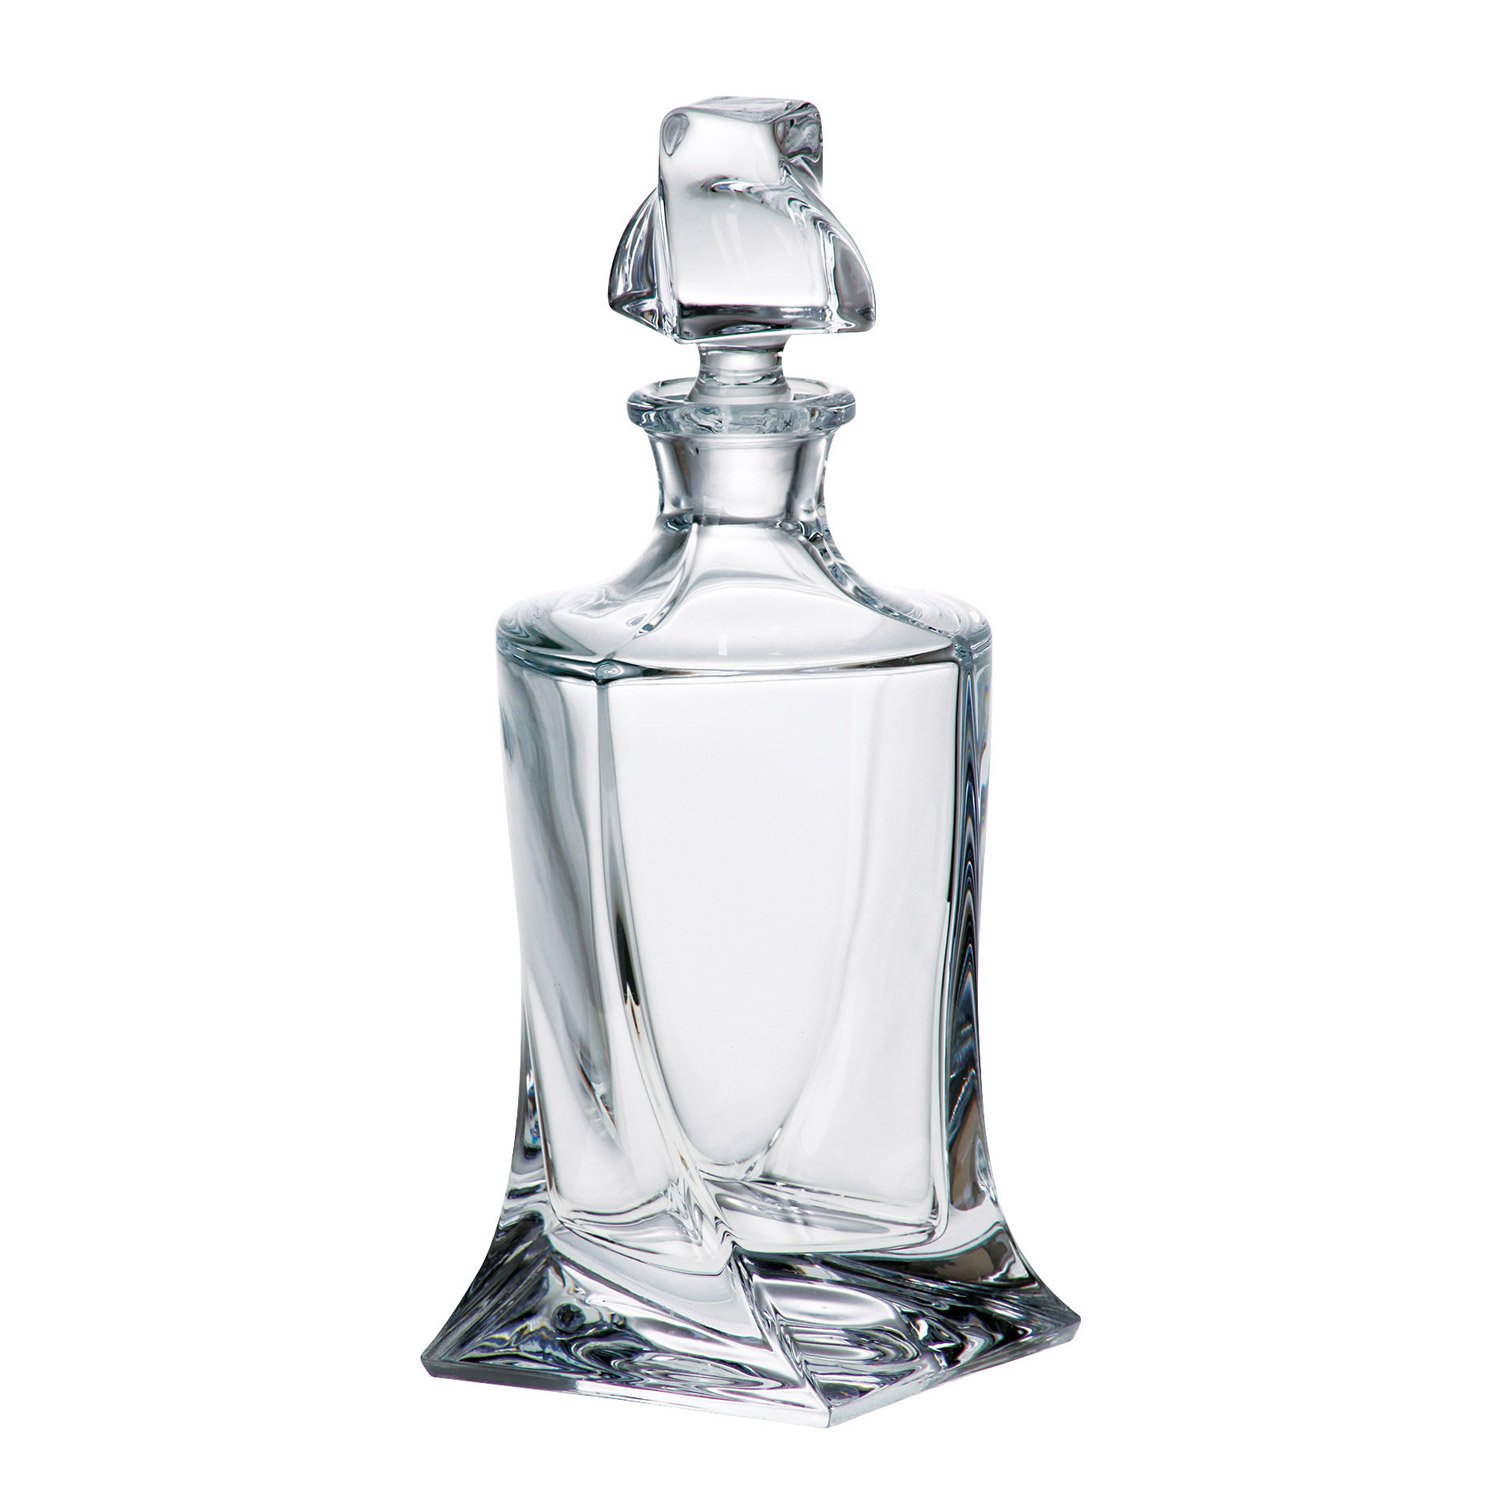 Crystal Wonderland Lead-Free Whiskey Liquor Decanter Calypso, 28.7 oz (850ml)